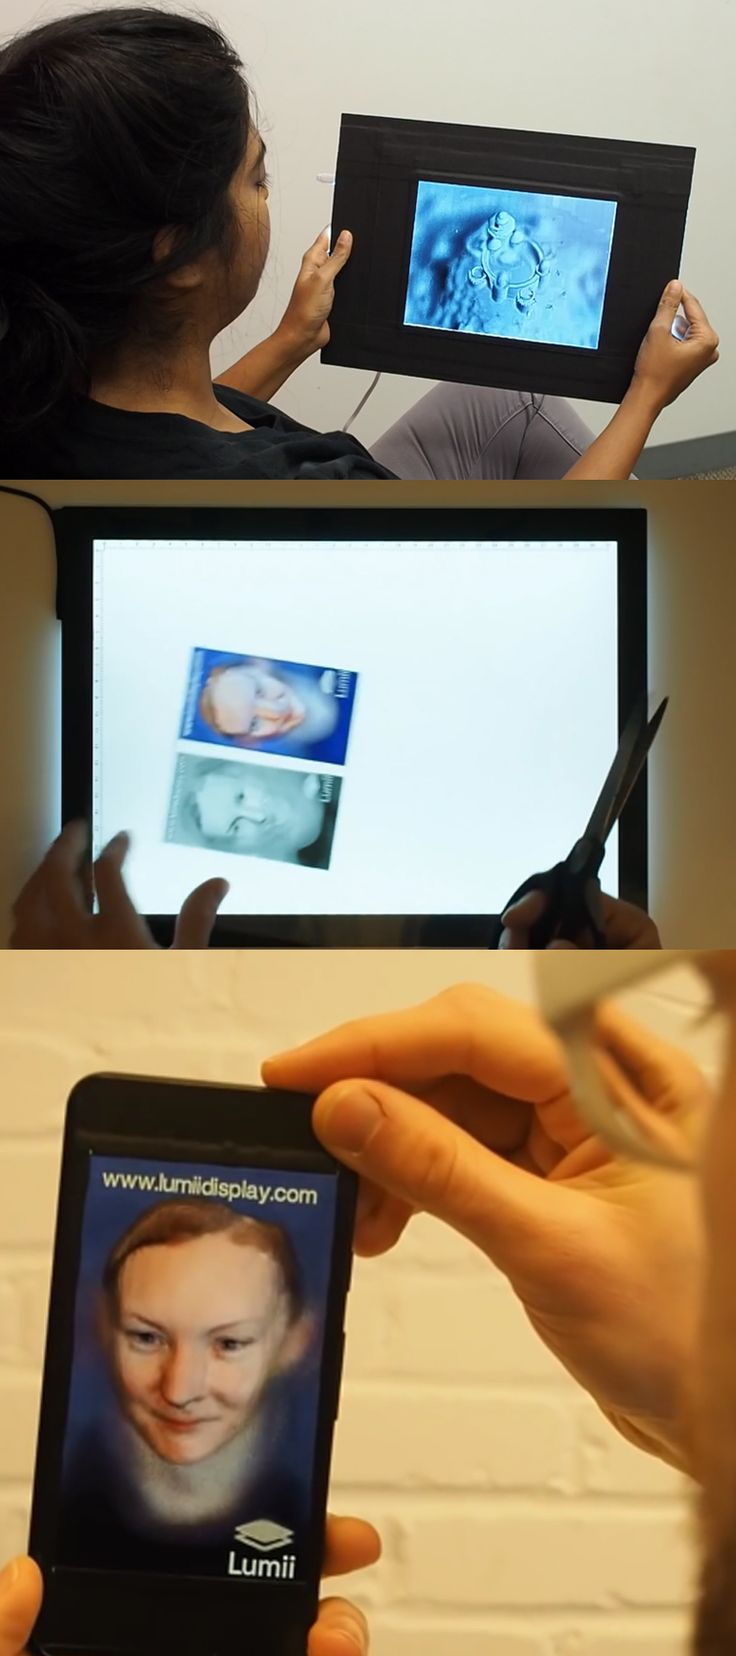 Upgrade your images and print 3D hologram right from your Inkjet printer. Check it out==>   Create 3D Hologram Images With Inkjet Printers Using Lumii!   http://gwyl.io/hologram-images/